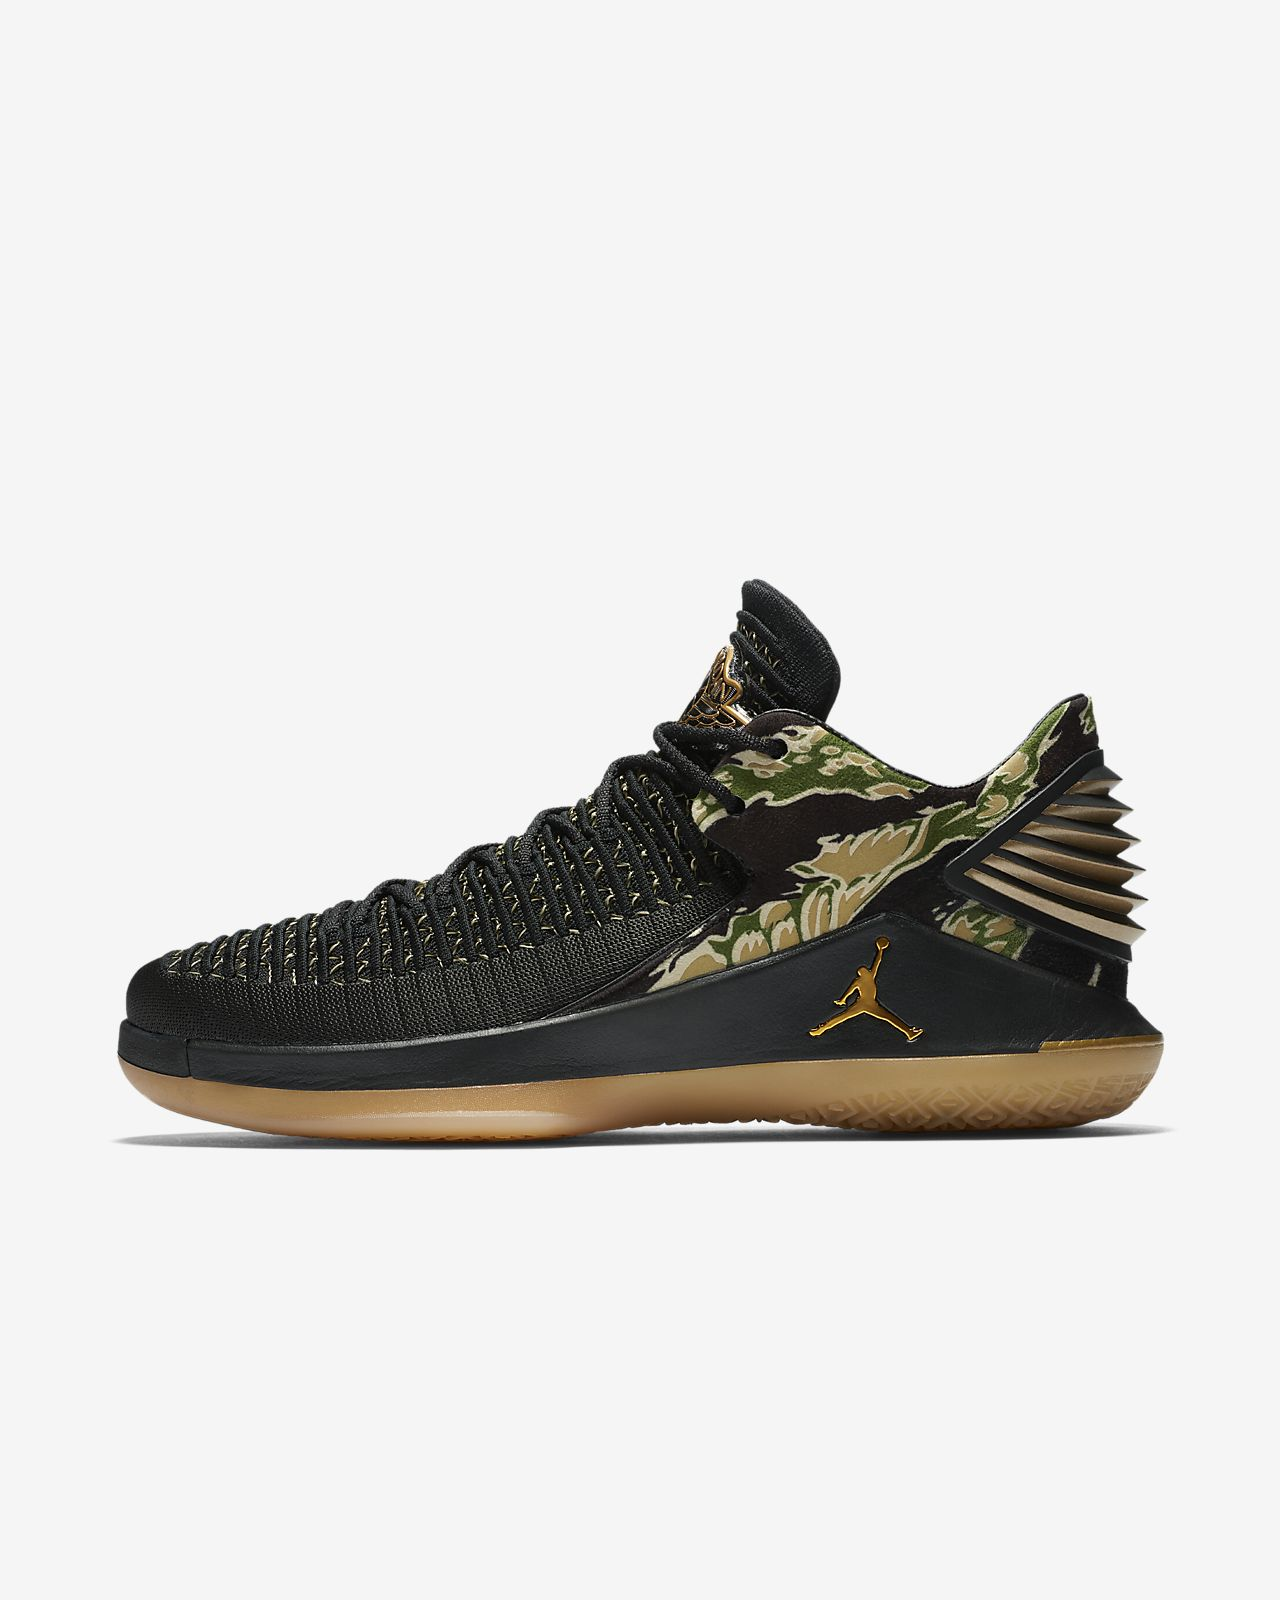 ... Air Jordan XXXII Low Men's Basketball Shoe